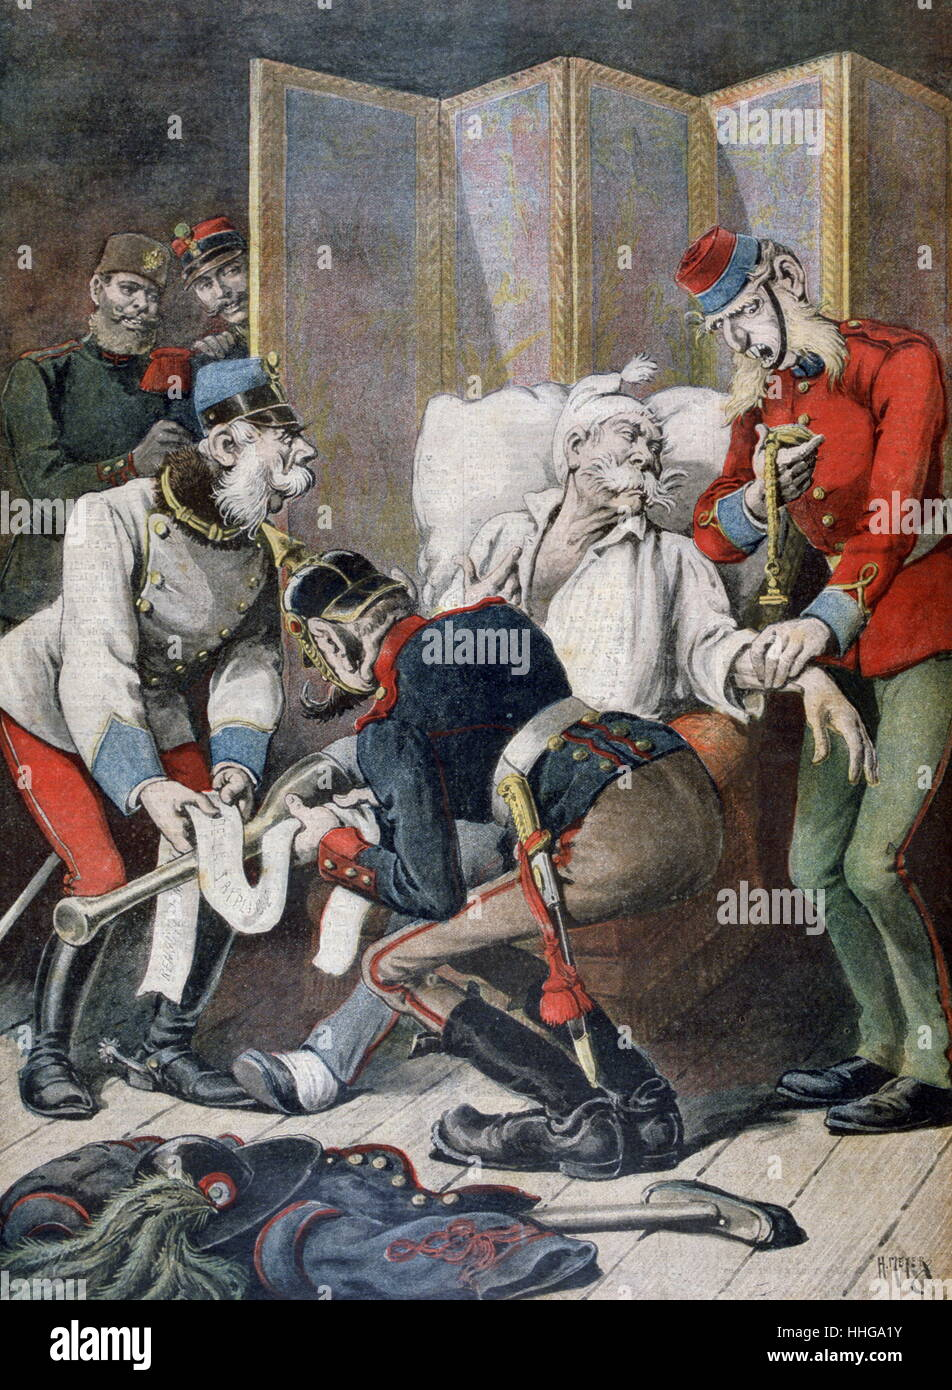 1896 Cartoon, depicting deterioration of the Triple Alliance, a secret agreement between Germany, Austria-Hungary, - Stock Image